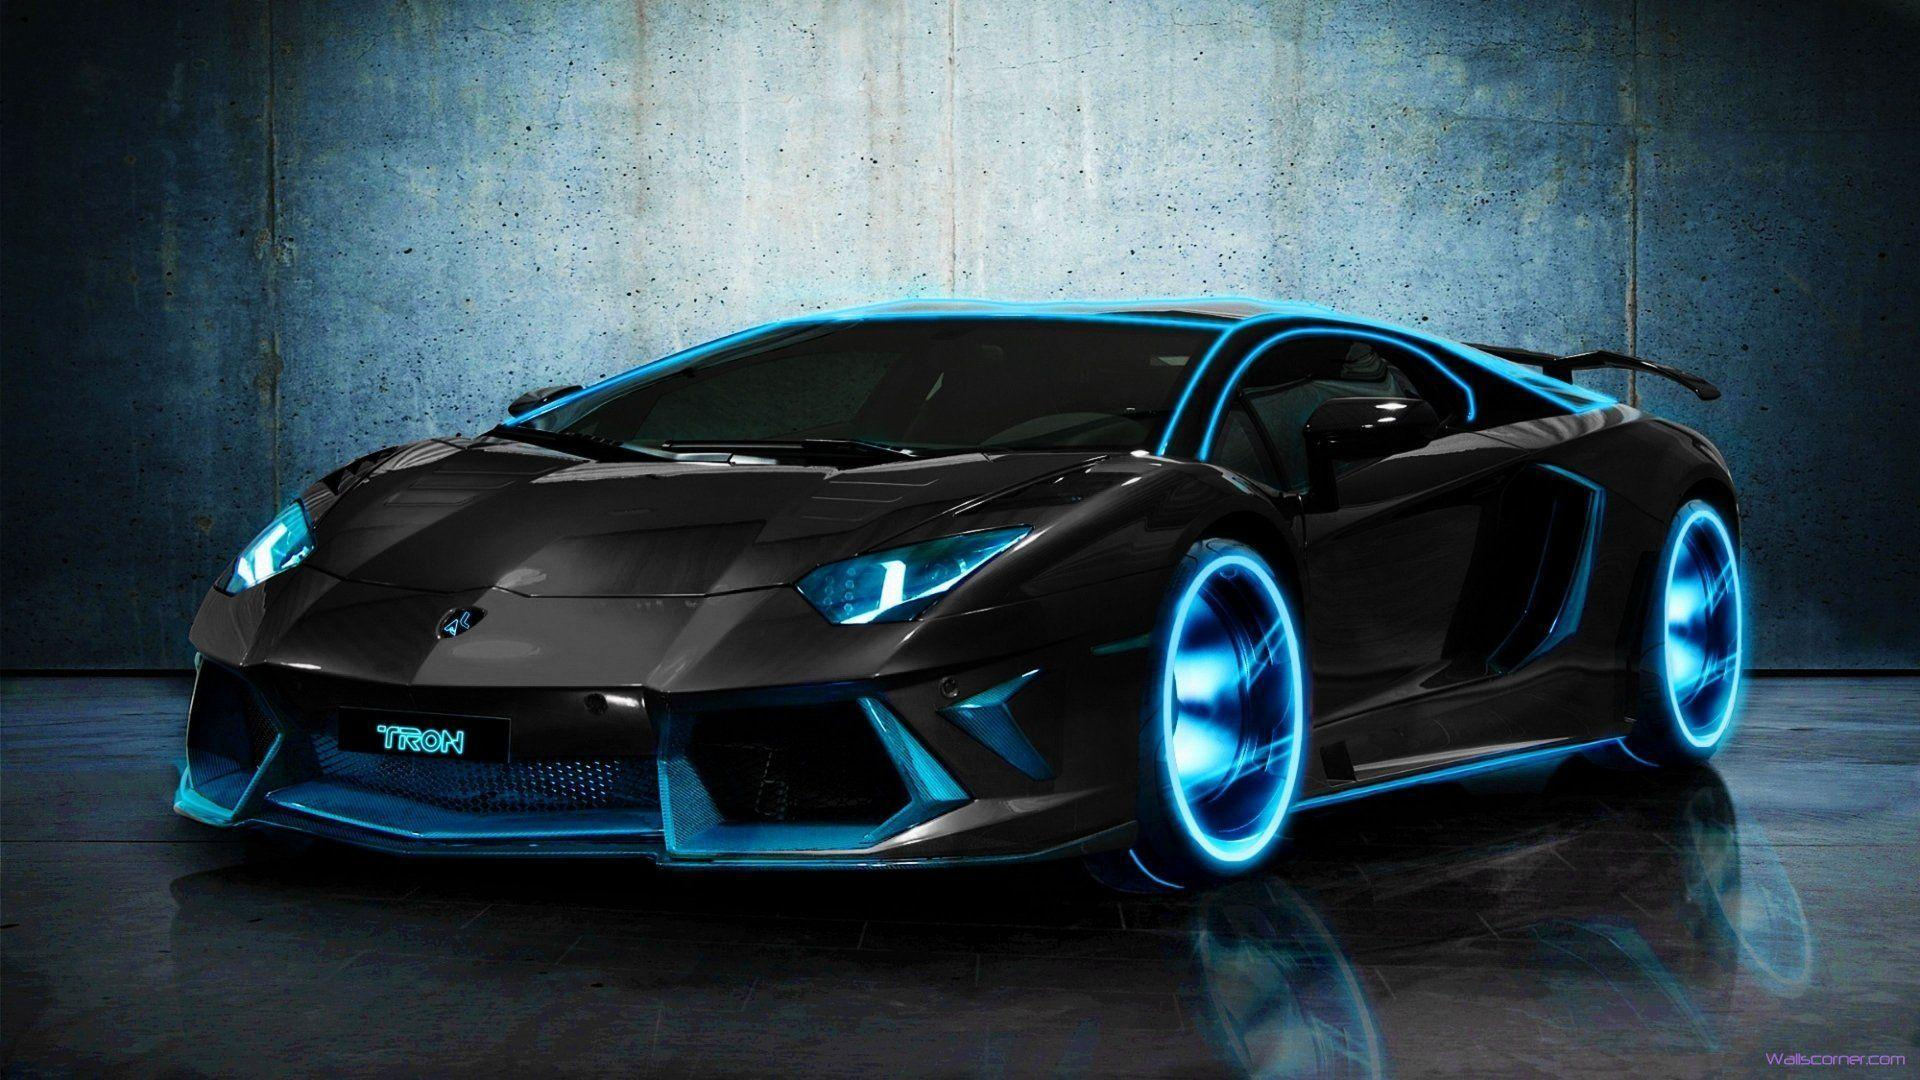 Beauty tron lamborghini aventador hd Wallpapers 1920x1080 2015